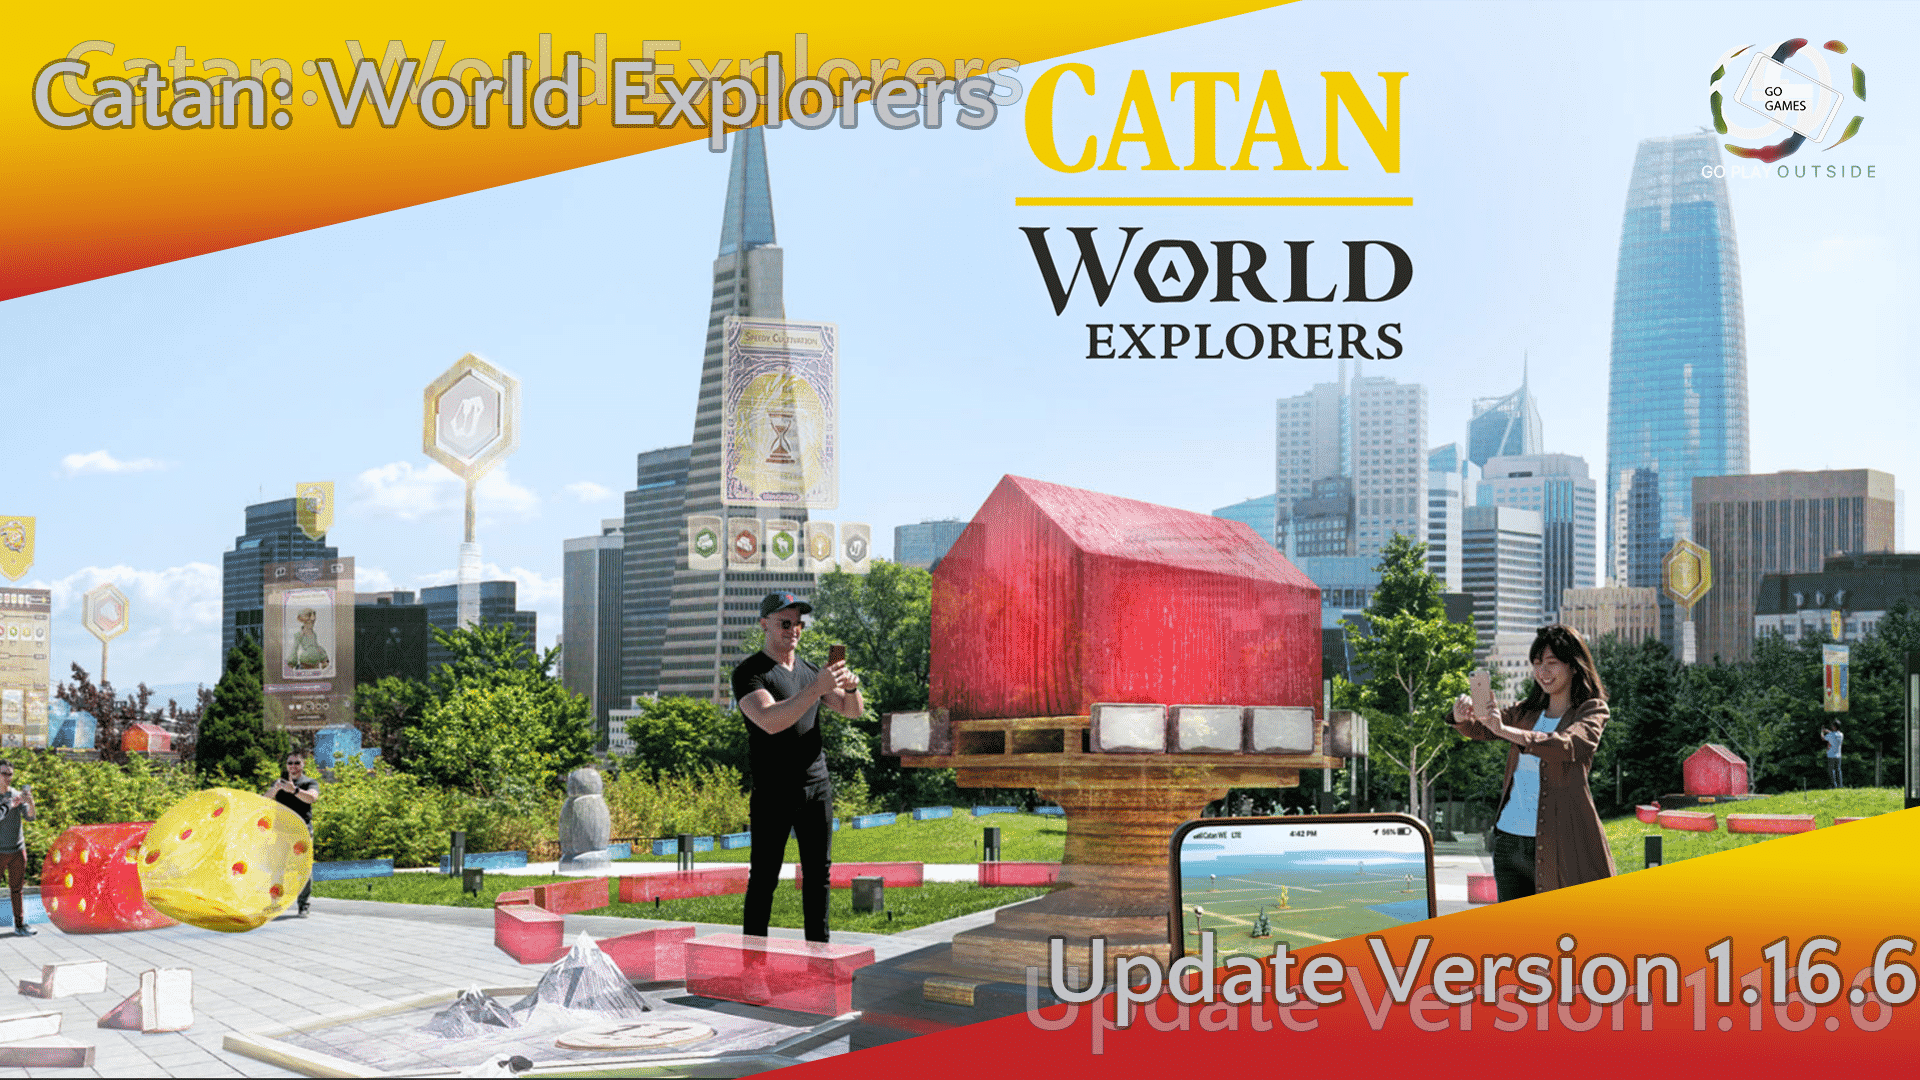 Catan: World Explorers Update 1.16.6